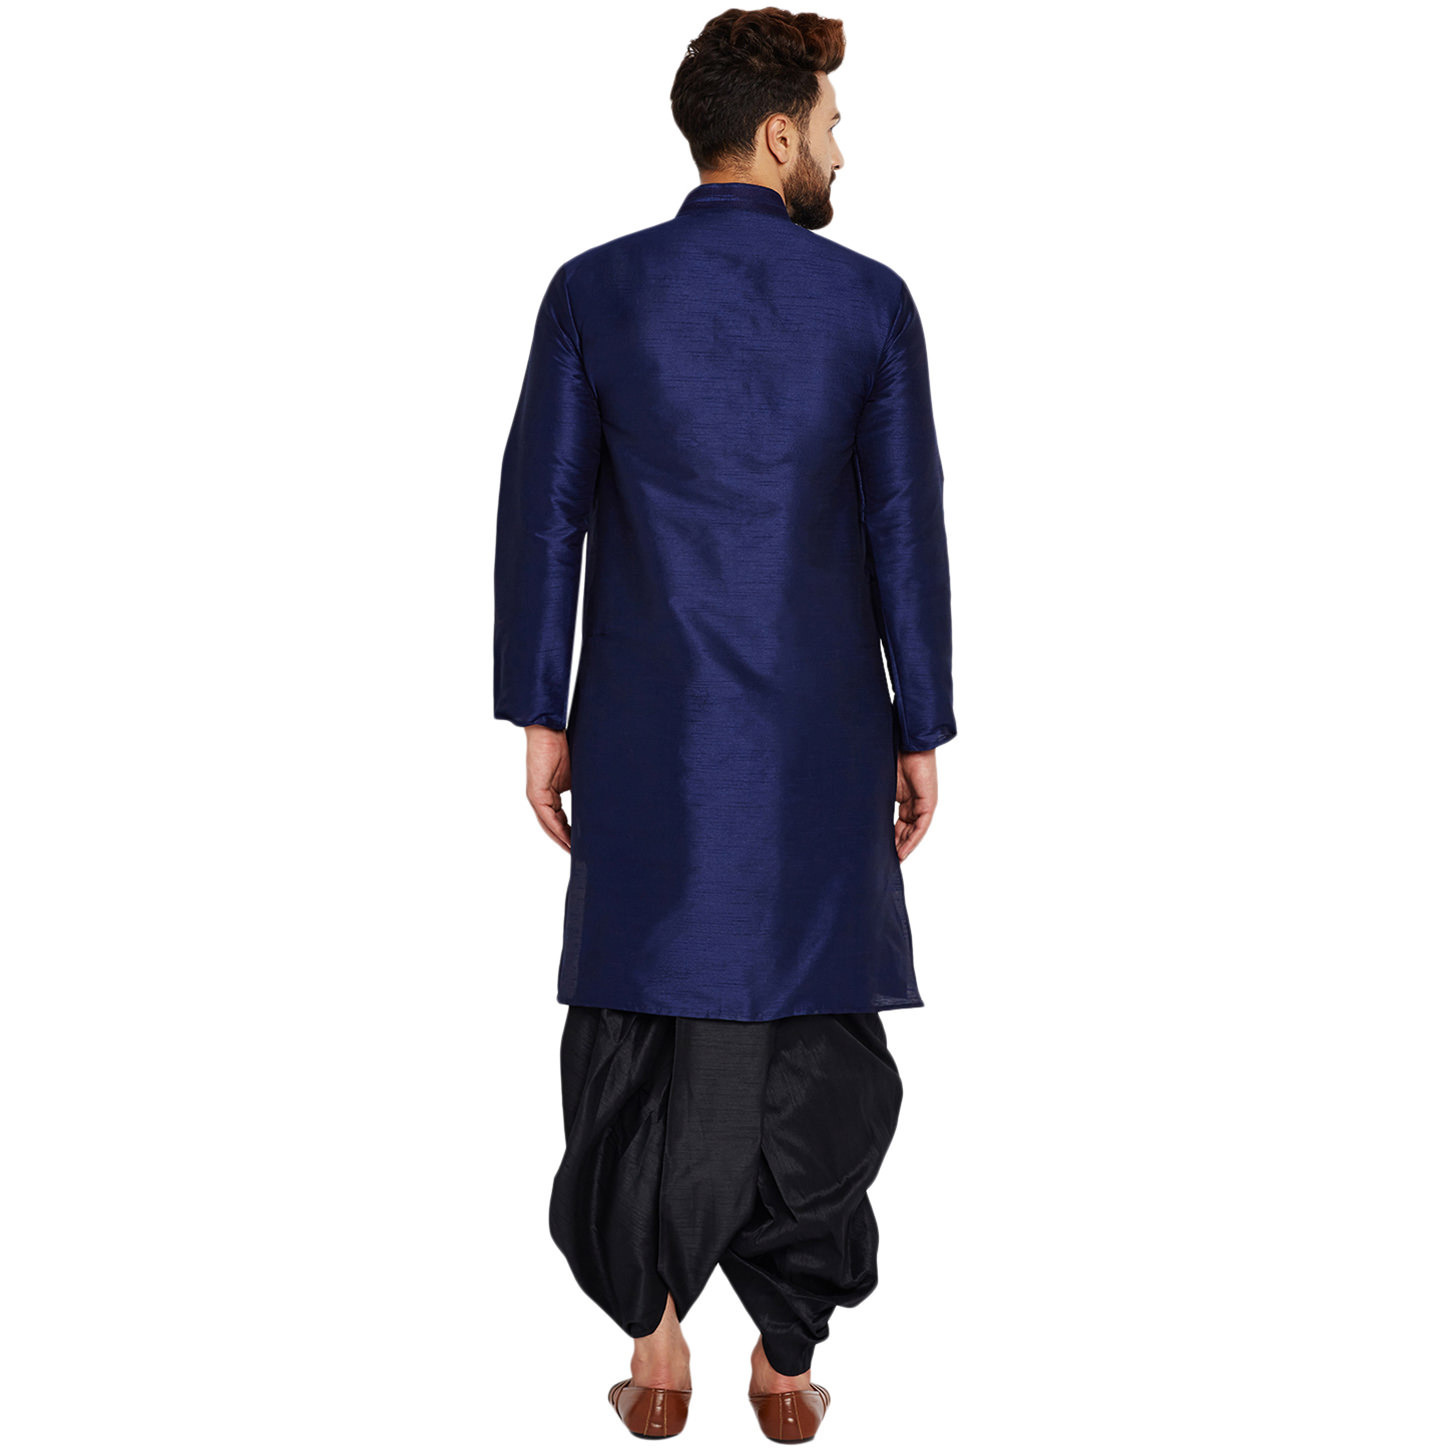 Sojanya (Since 1958)B Men's Traditional Ethnic Wear Dupion Silk Royal Blue and BlackThread embroidery Dhoti Kurta Set Regular Fit